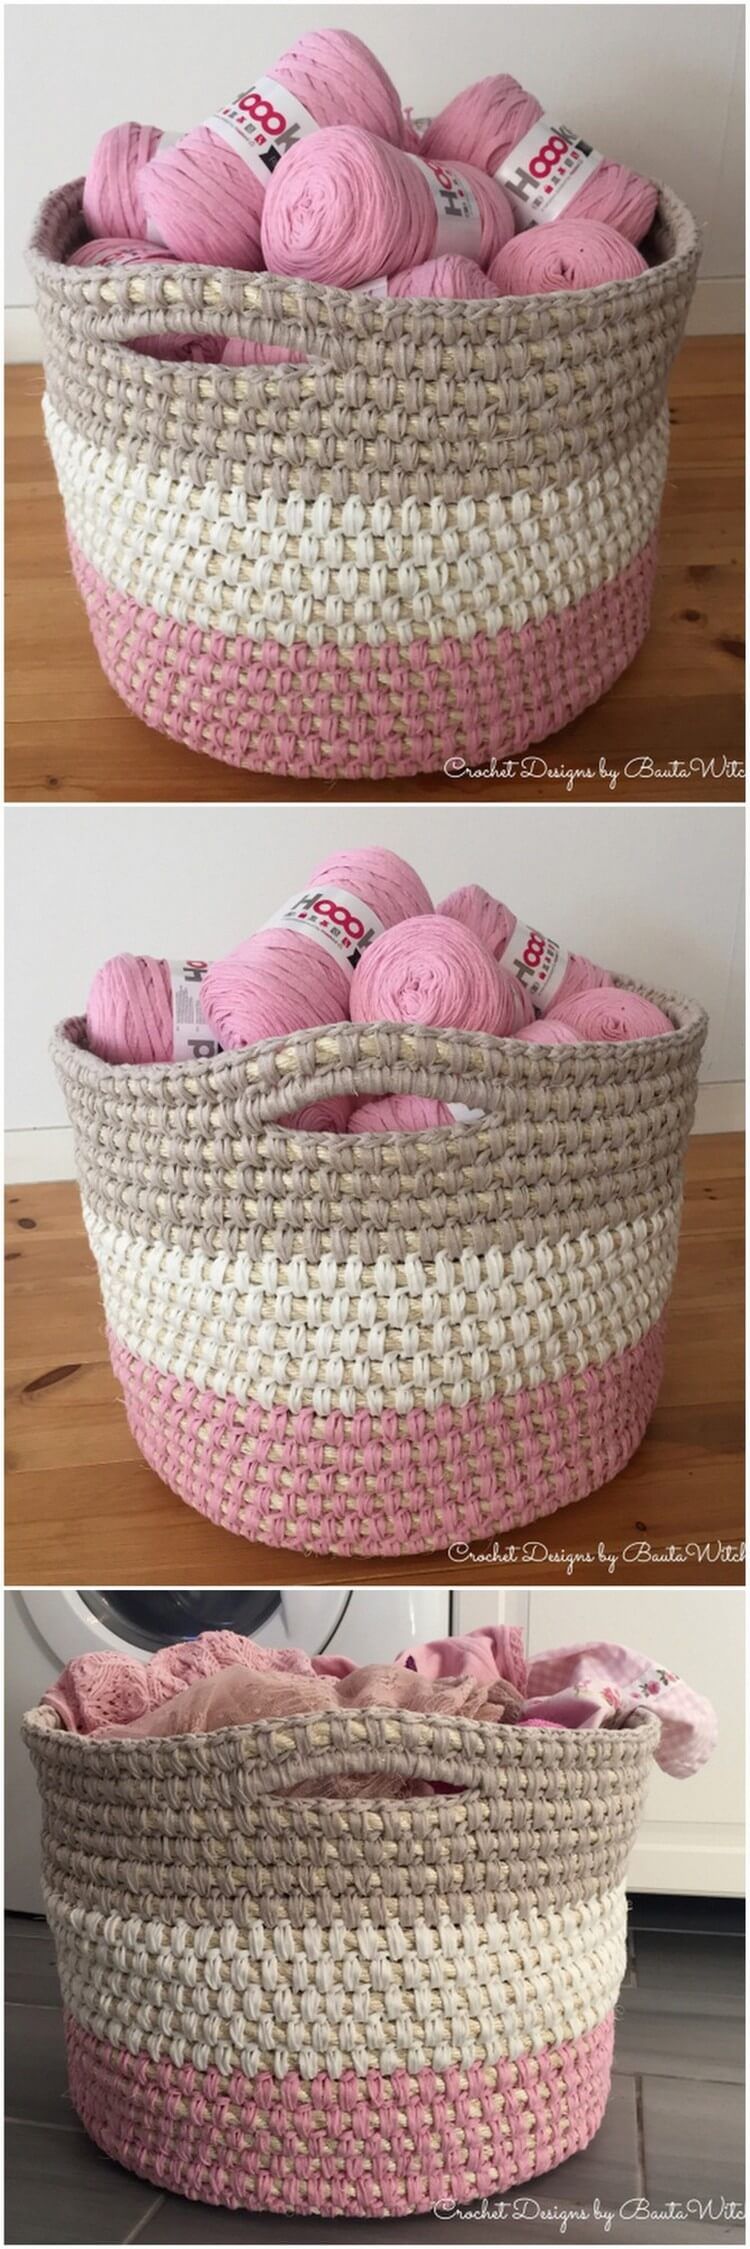 Crochet Basket Pattern (84)